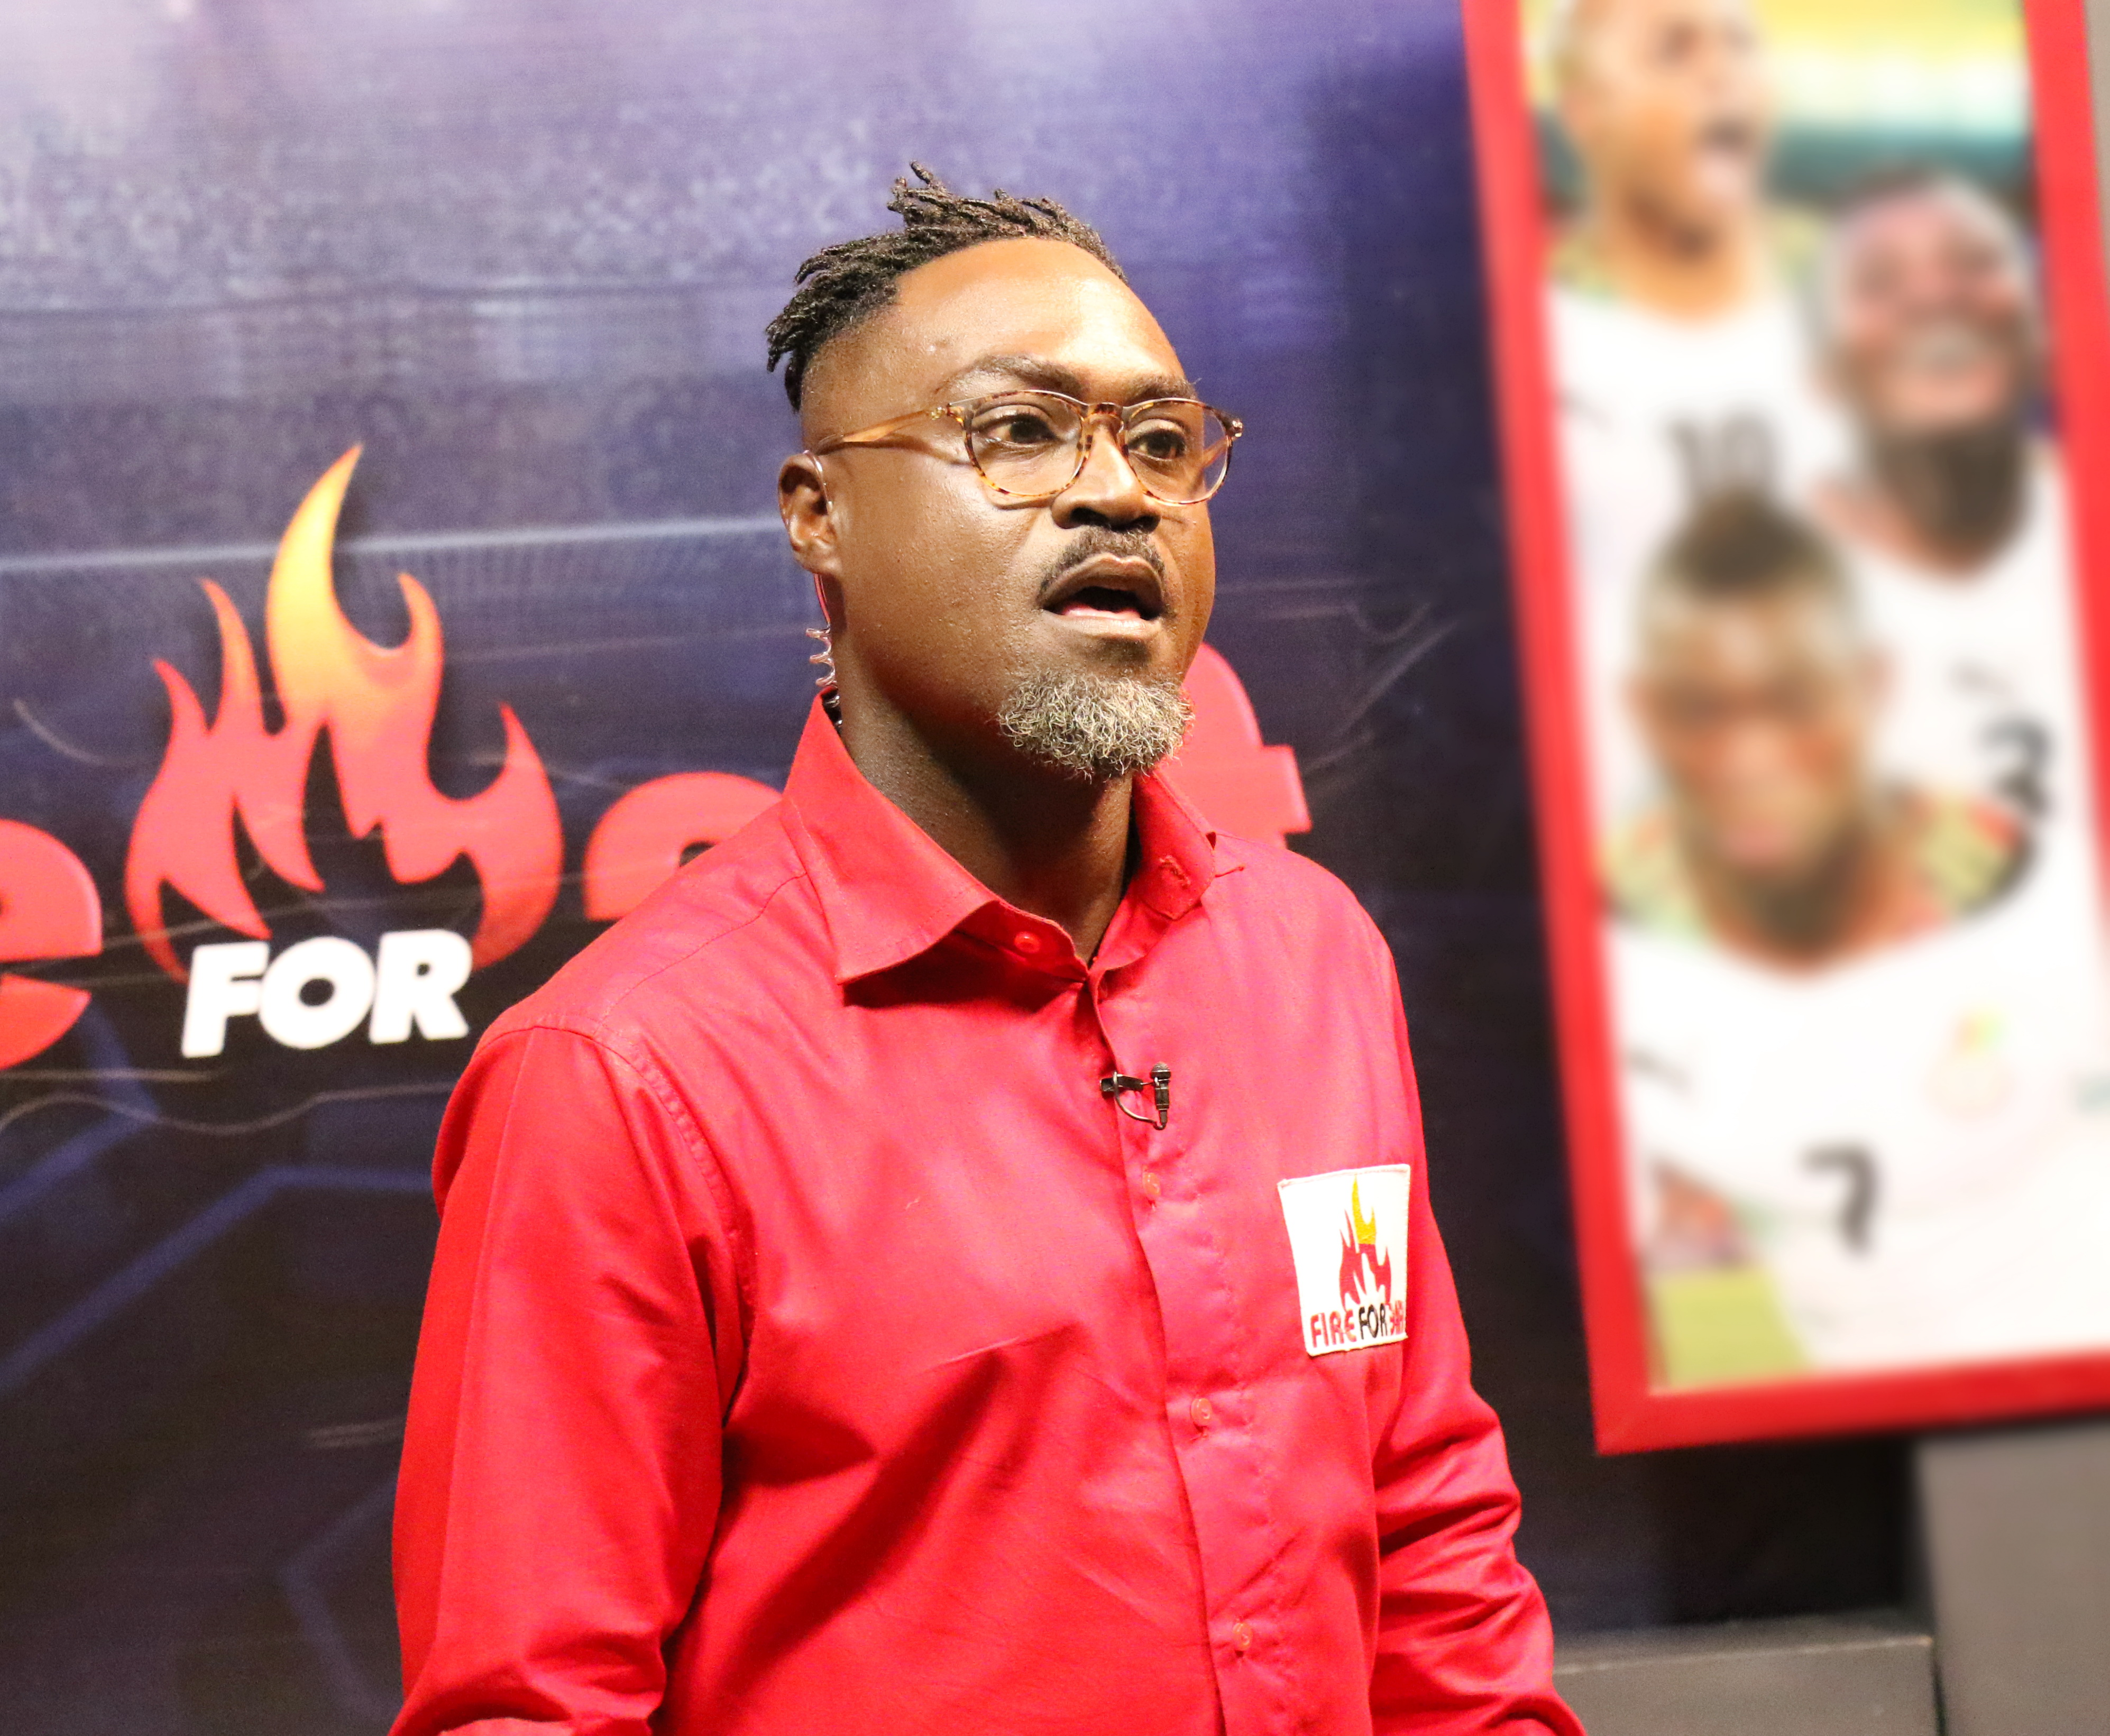 3G Awards 2019: Countryman Songo,'Fire for Fire' to be honoured in ...